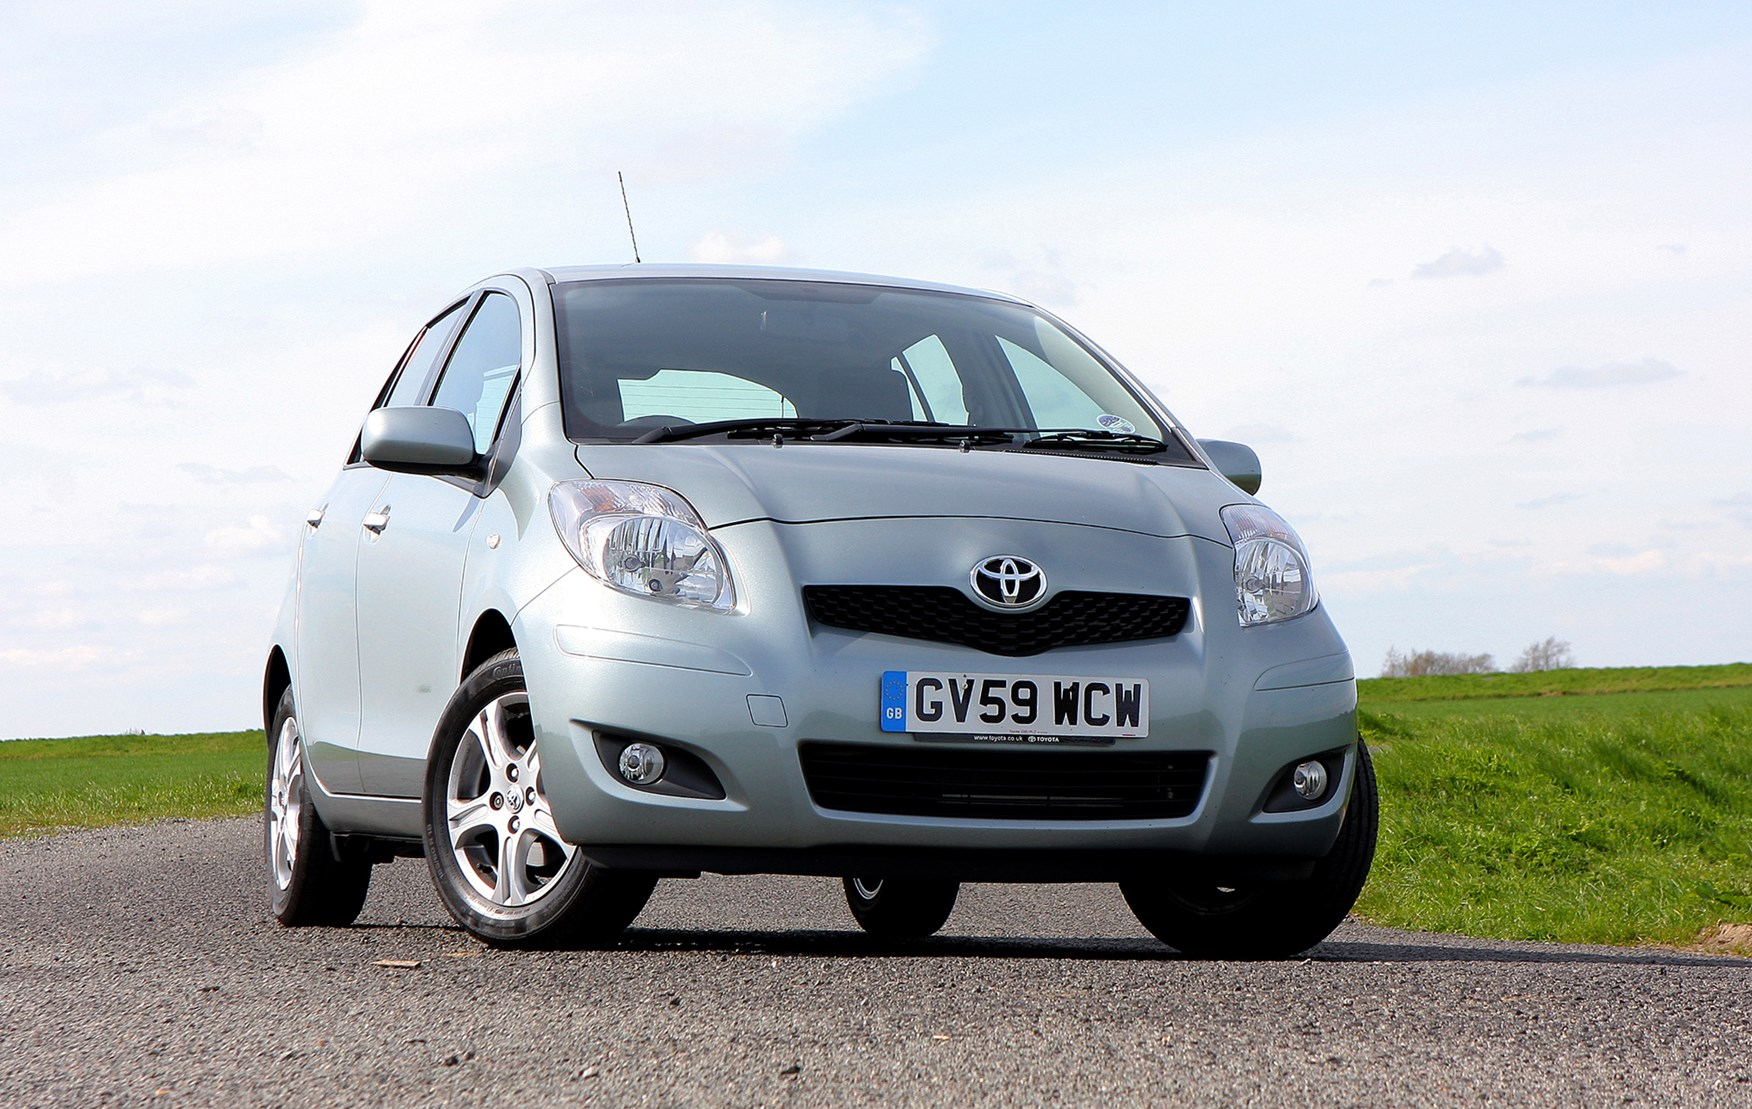 Toyota Yaris Hatchback Review (2006 - 2011) | Parkers